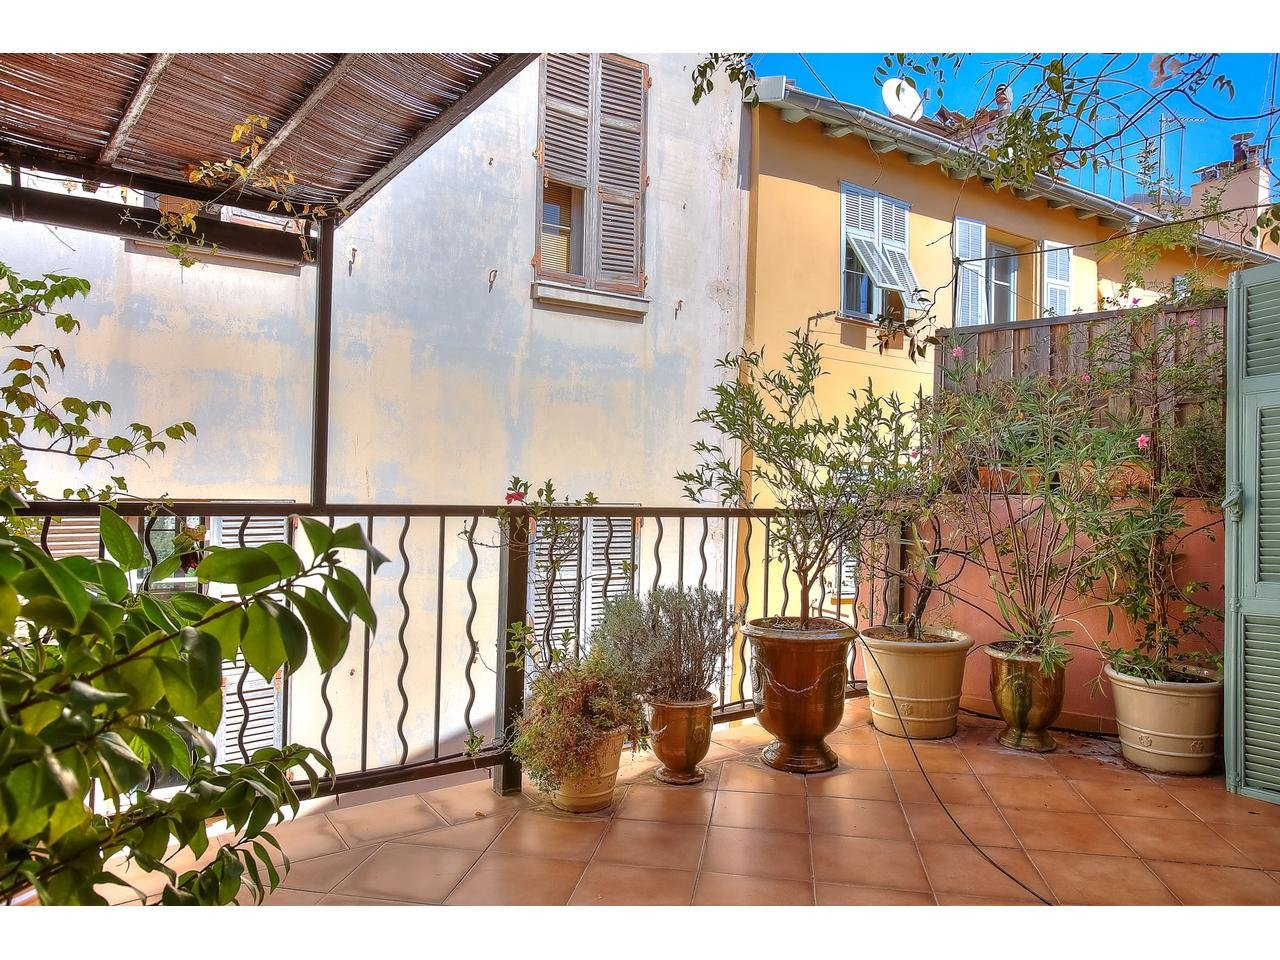 Appartement  2 Rooms 52.82m2  for sale   365 000 €